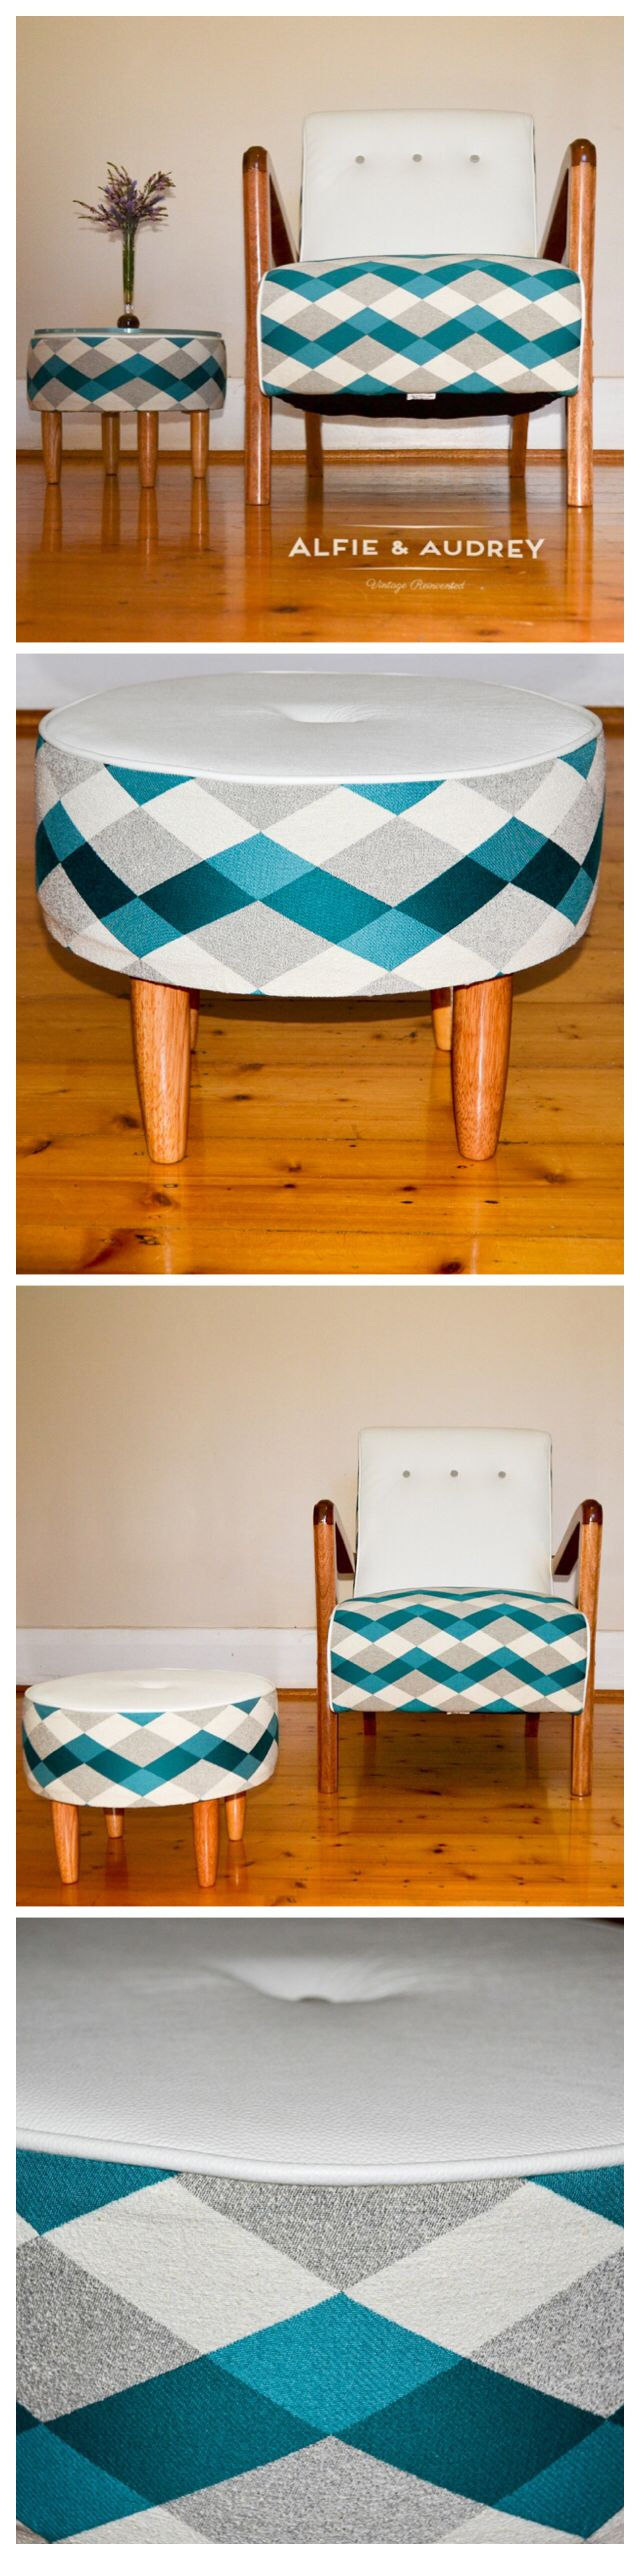 Our Stirling chair has a neat new footstool/side table online now @ www.alfieandaudrey.com.au